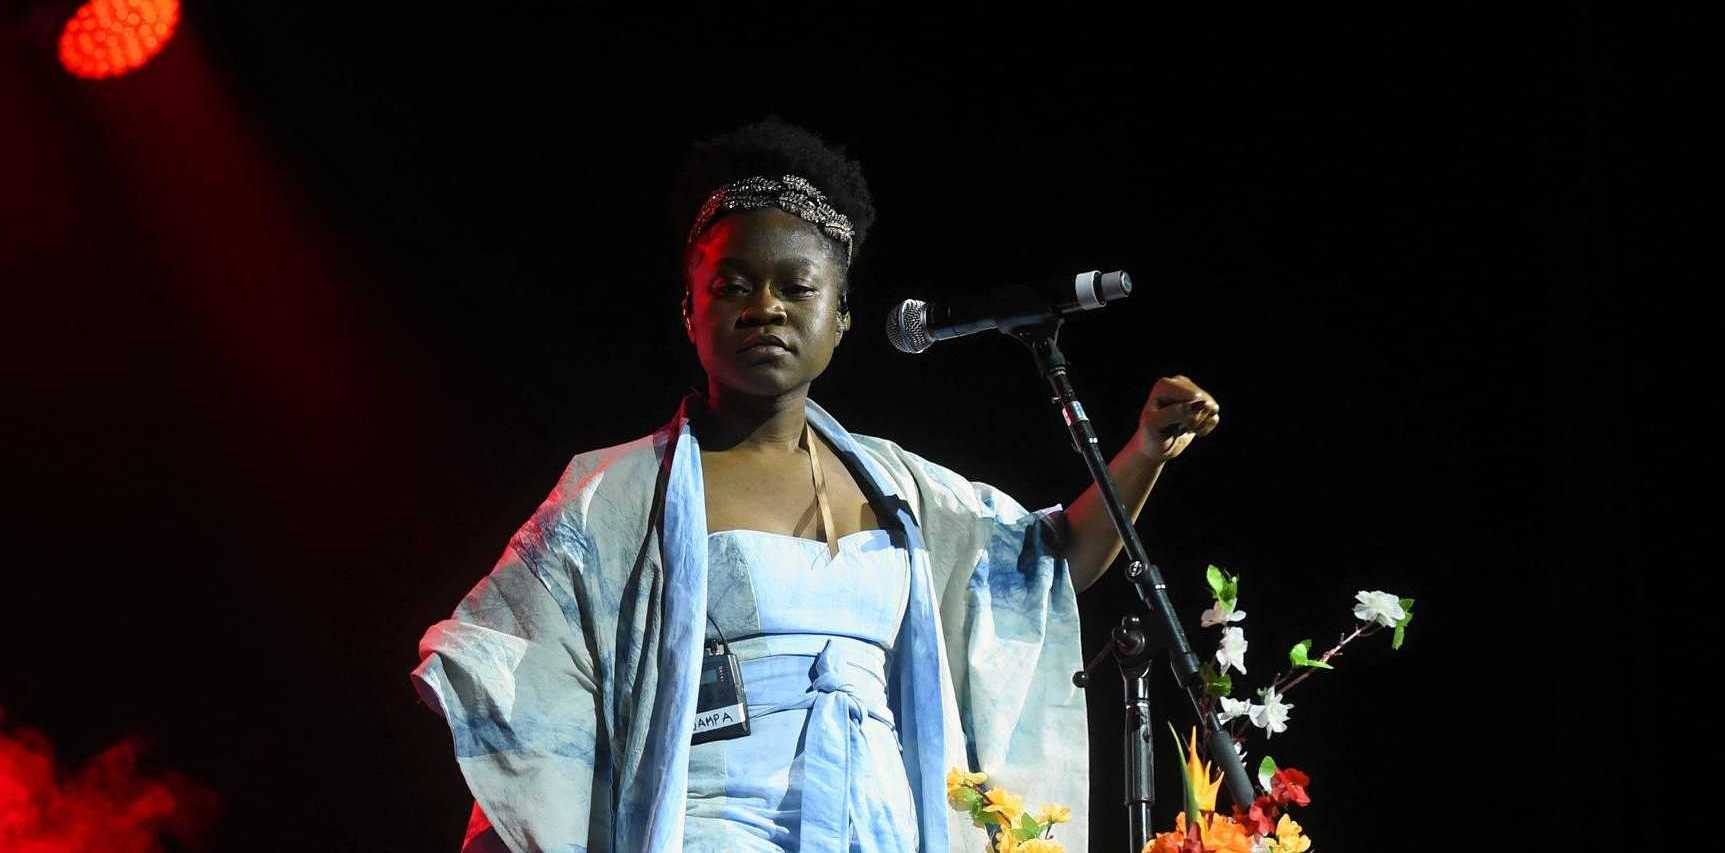 ON STAGE: Sampa the Great play Splendour in the Grass 2018.